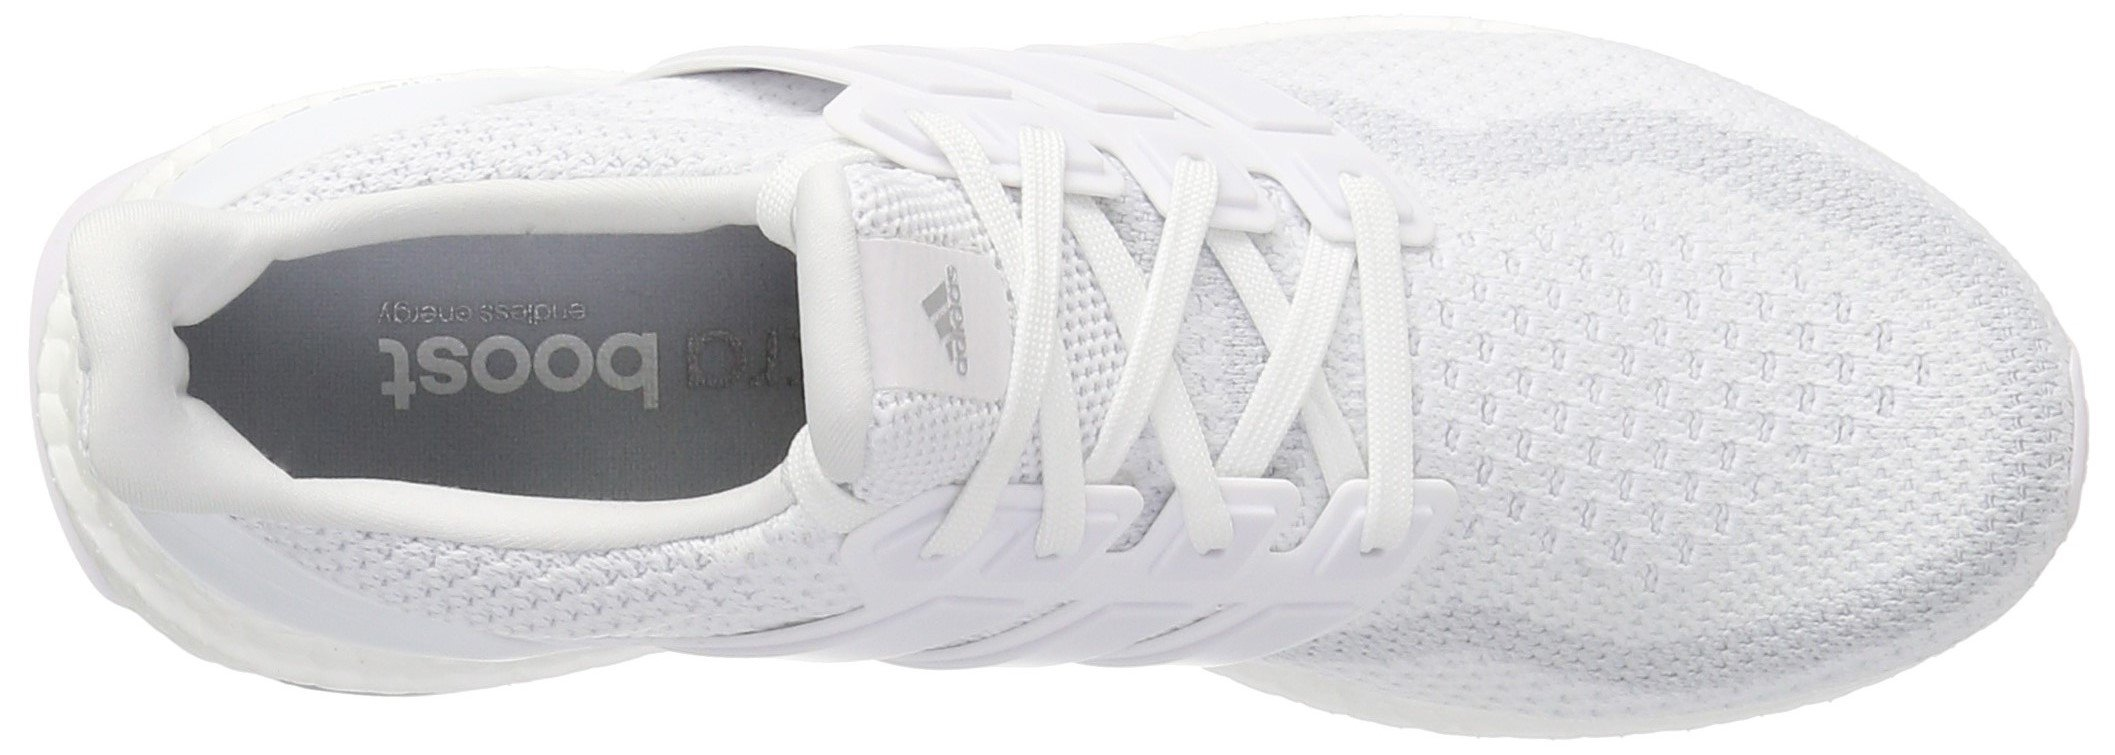 71KQswSchlL - adidas Ultra Boost M, Men's Competition Running Shoes Multicolour Size: 8 UK M Crystal White